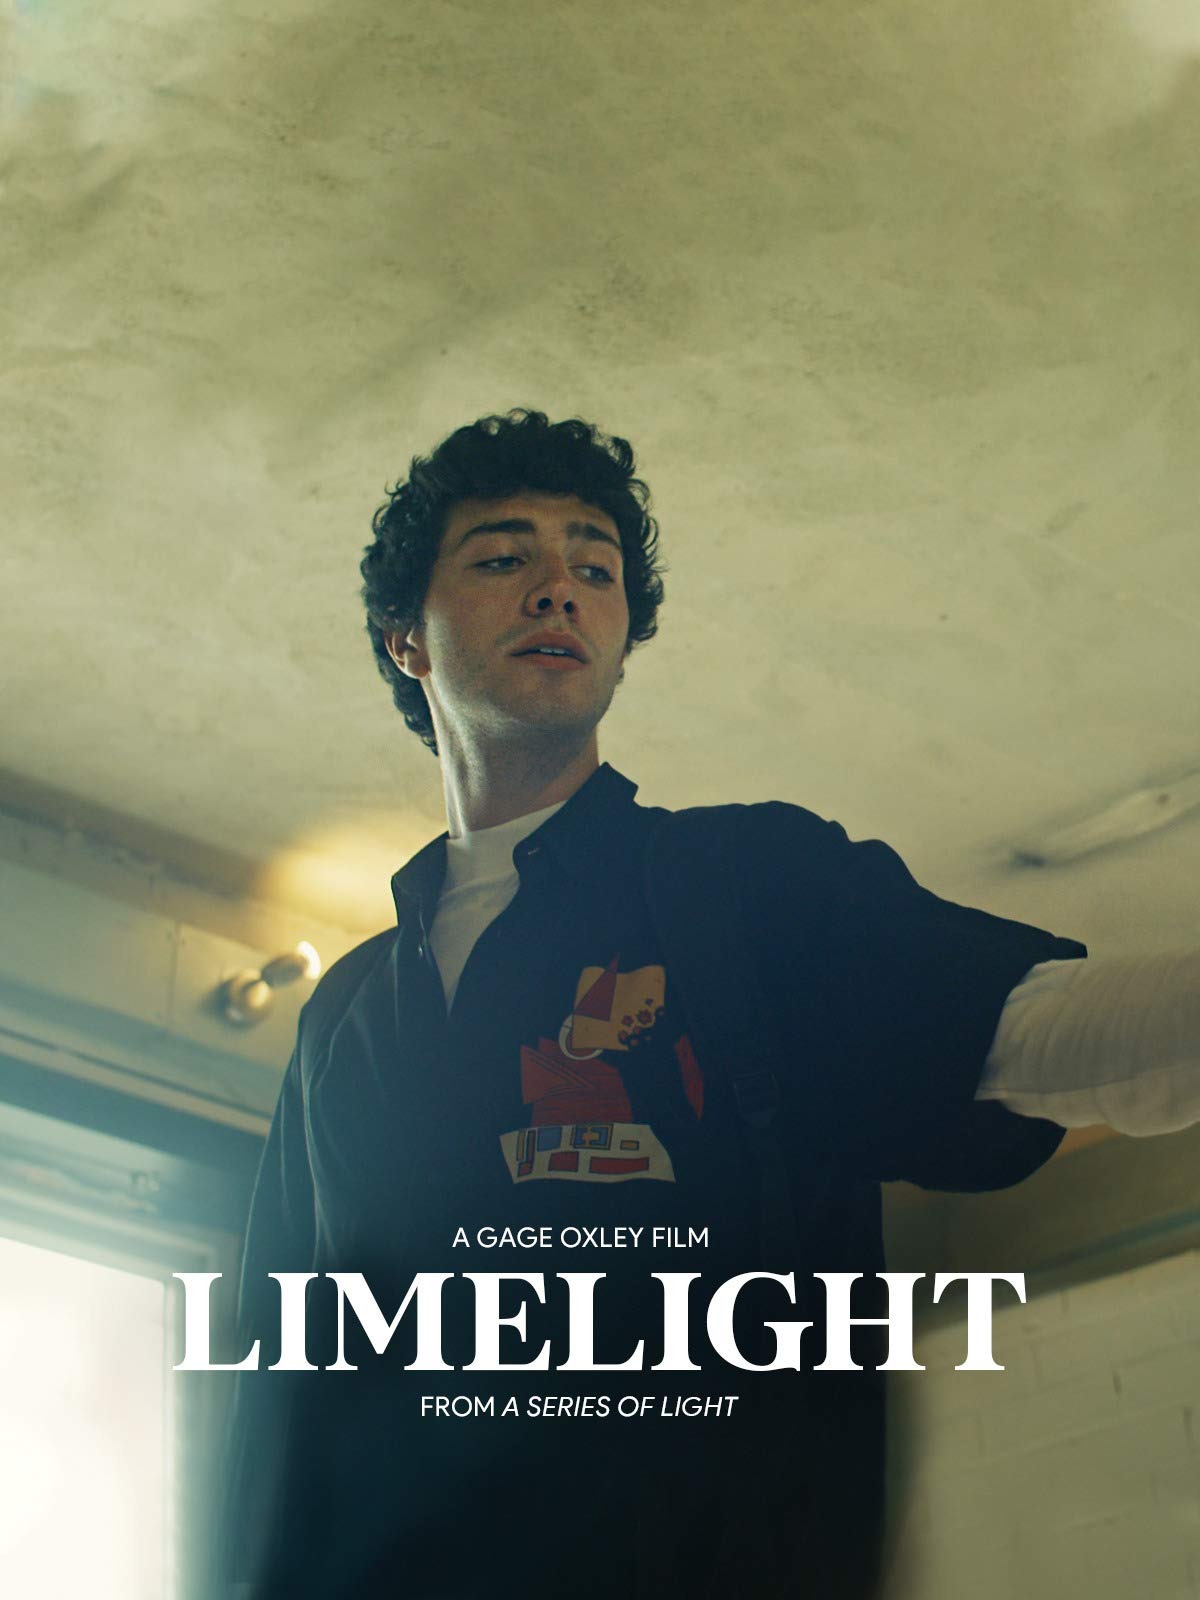 A Series of Light: Limelight